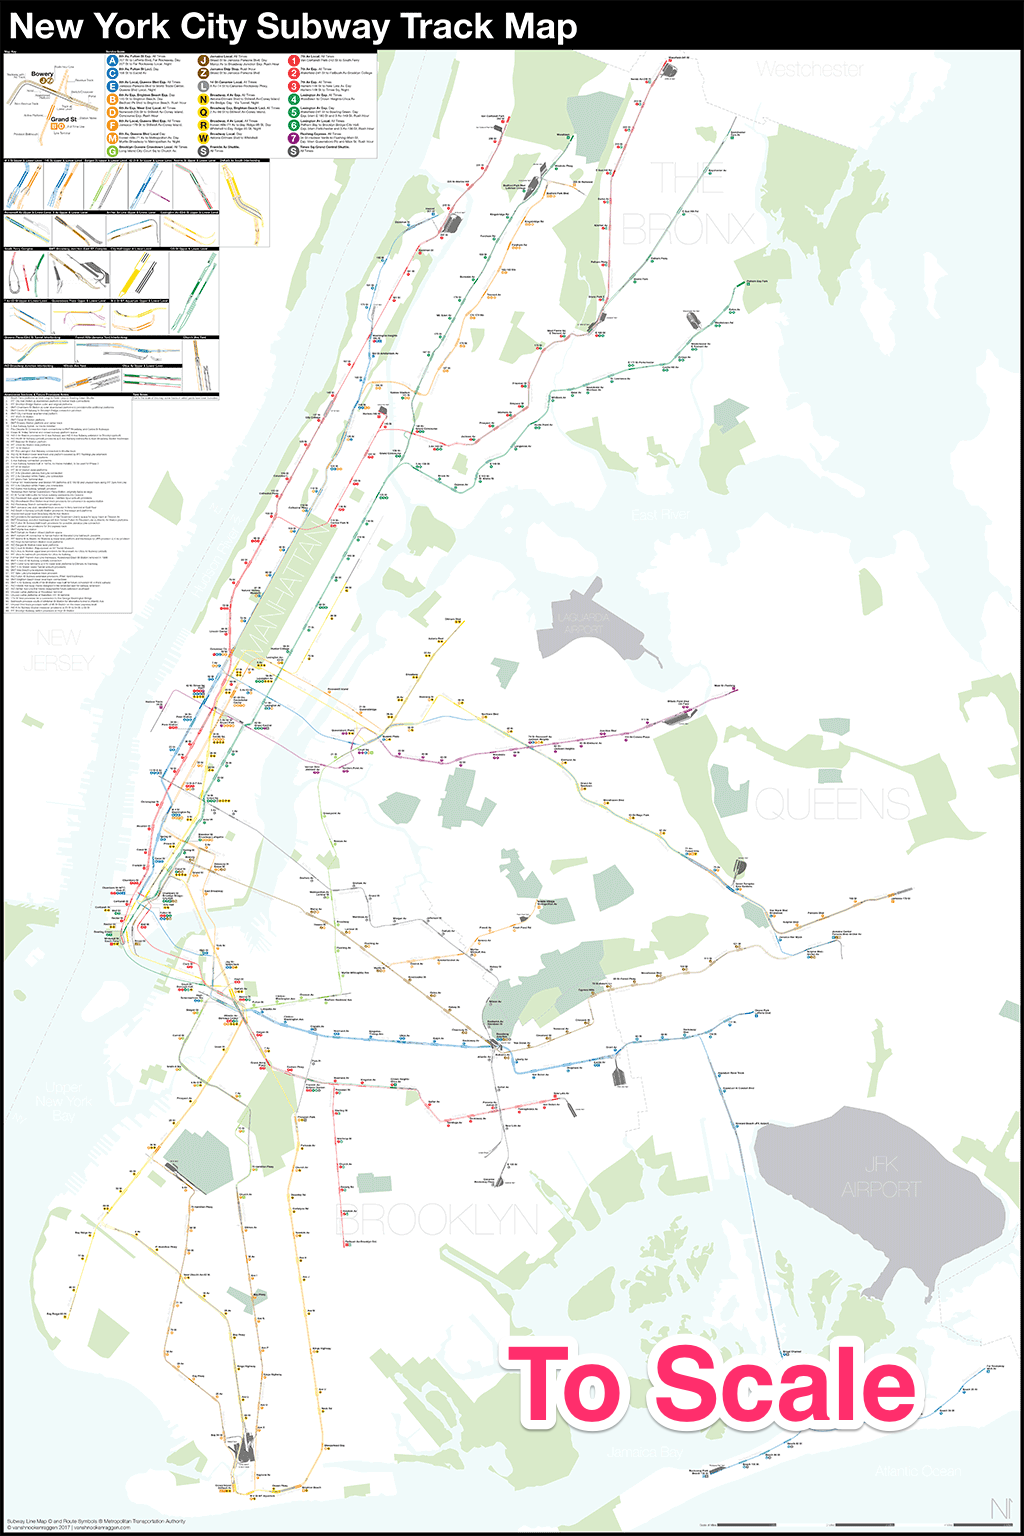 Howto Readthe Nyc Subway Map.Monday Musings 5 13 19